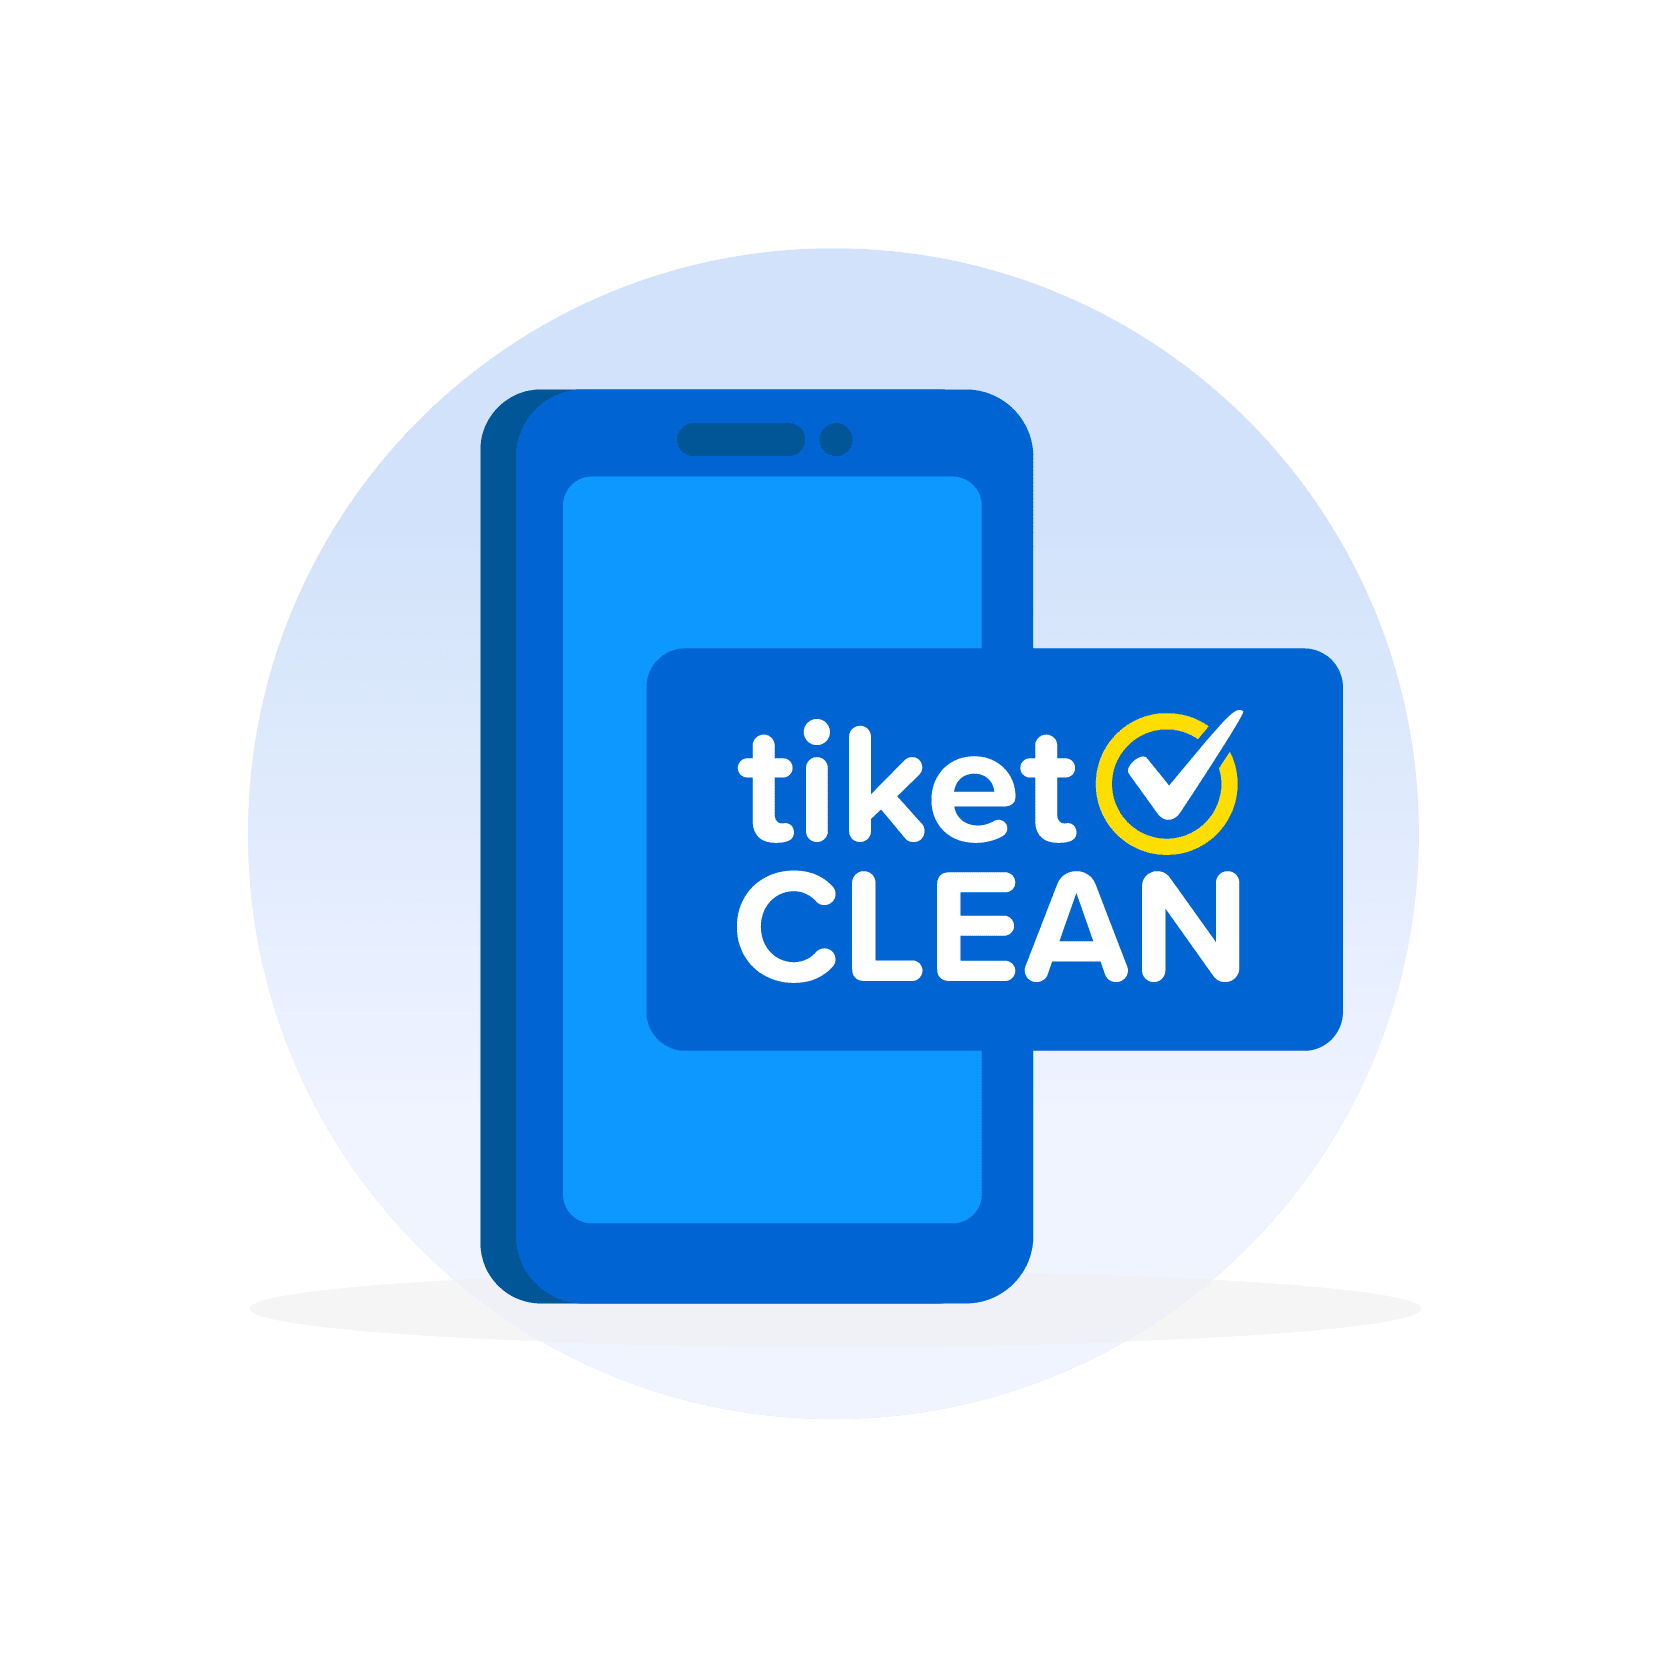 Safe and comfort travel with tiket CLEAN from tiket.com